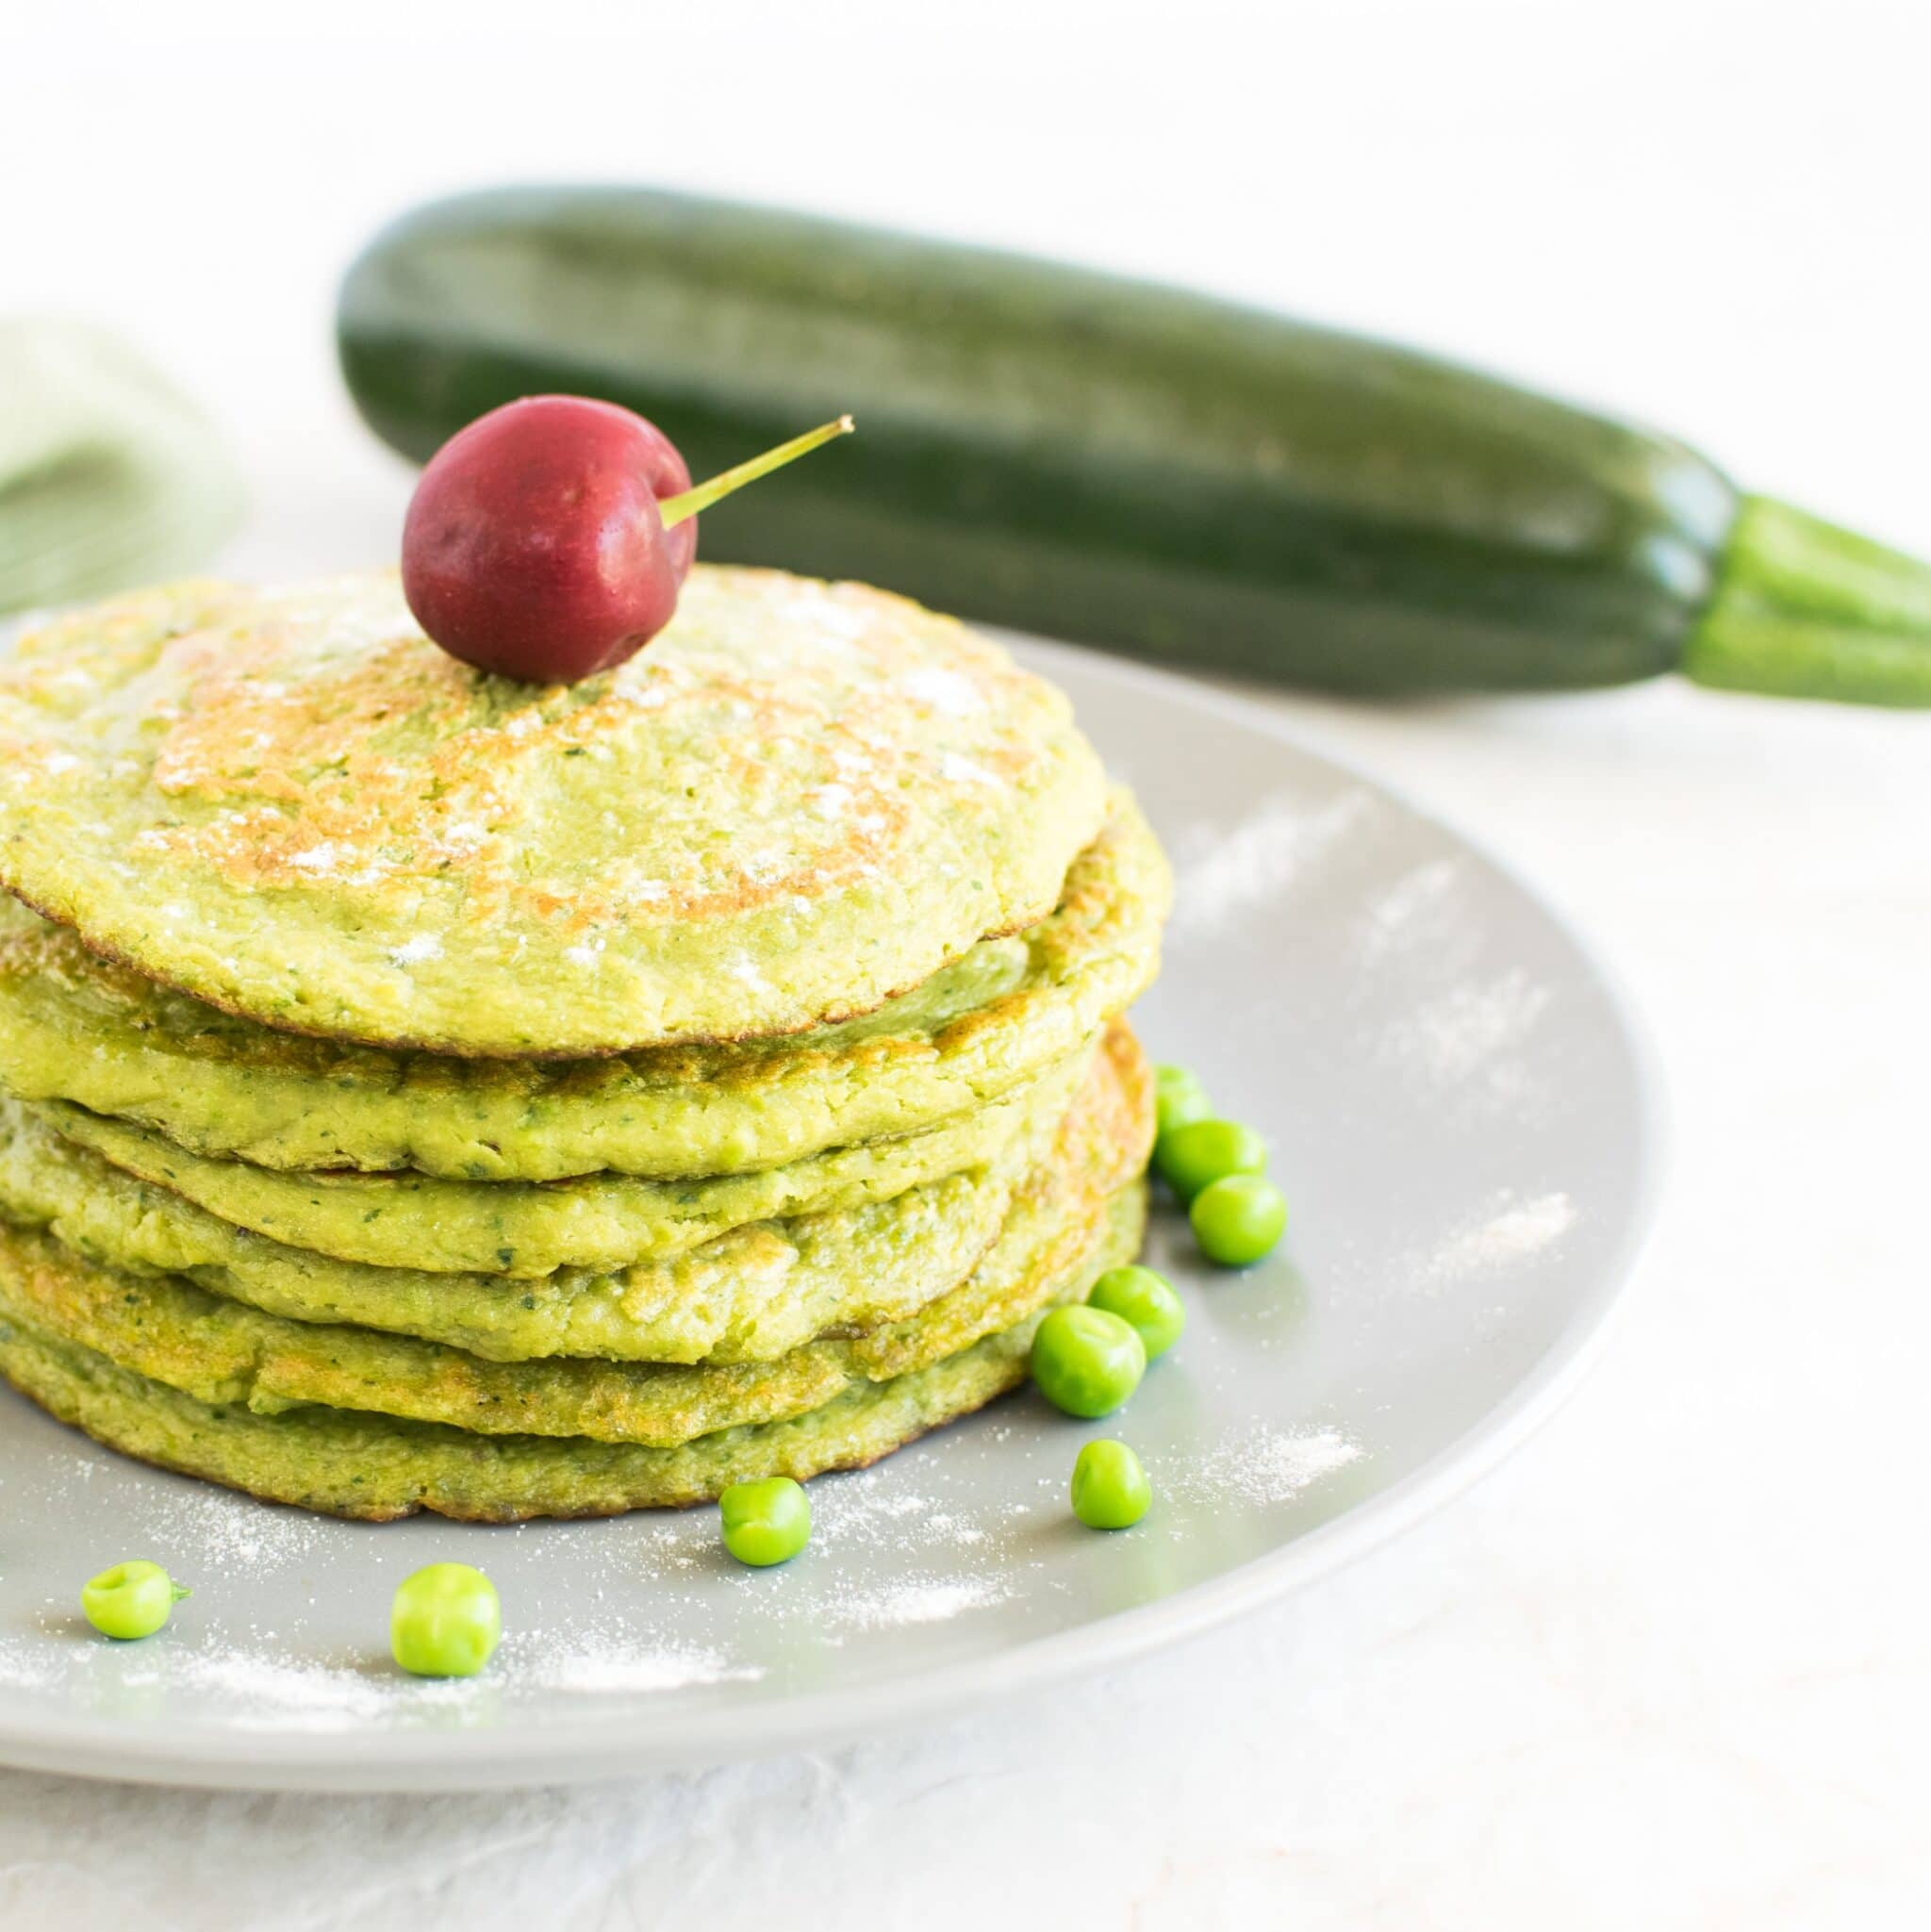 Green Peas Zucchini Sweet Pancakes | vegan and gluten free made with fresh vegetables these pancakes are perfect for a weekend family brunch | kiipfit.com